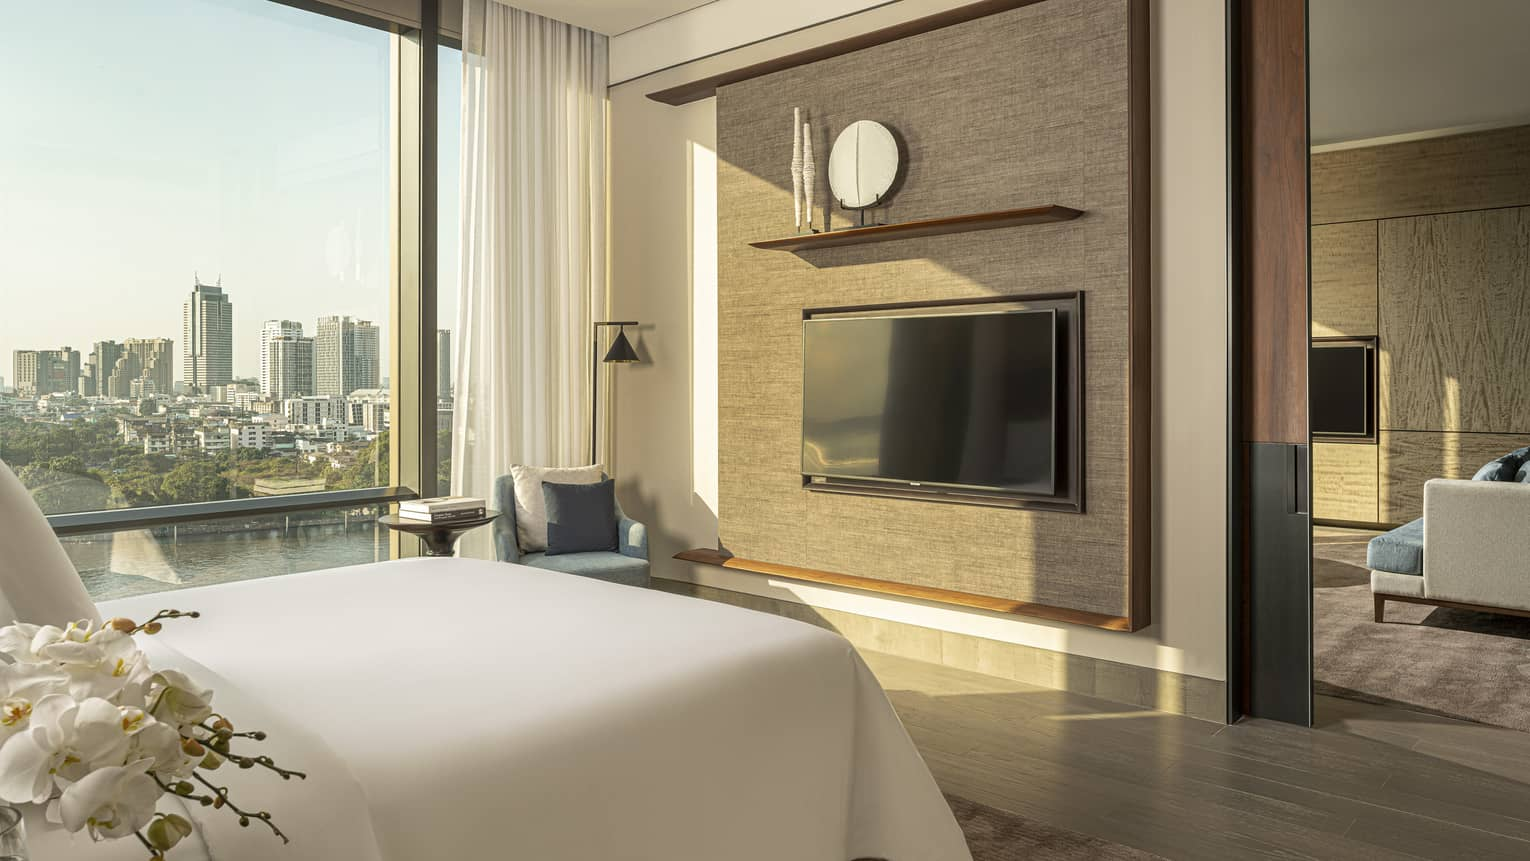 White king bed facing dark tan wall with TV, display shelf beside tall window with river and city view